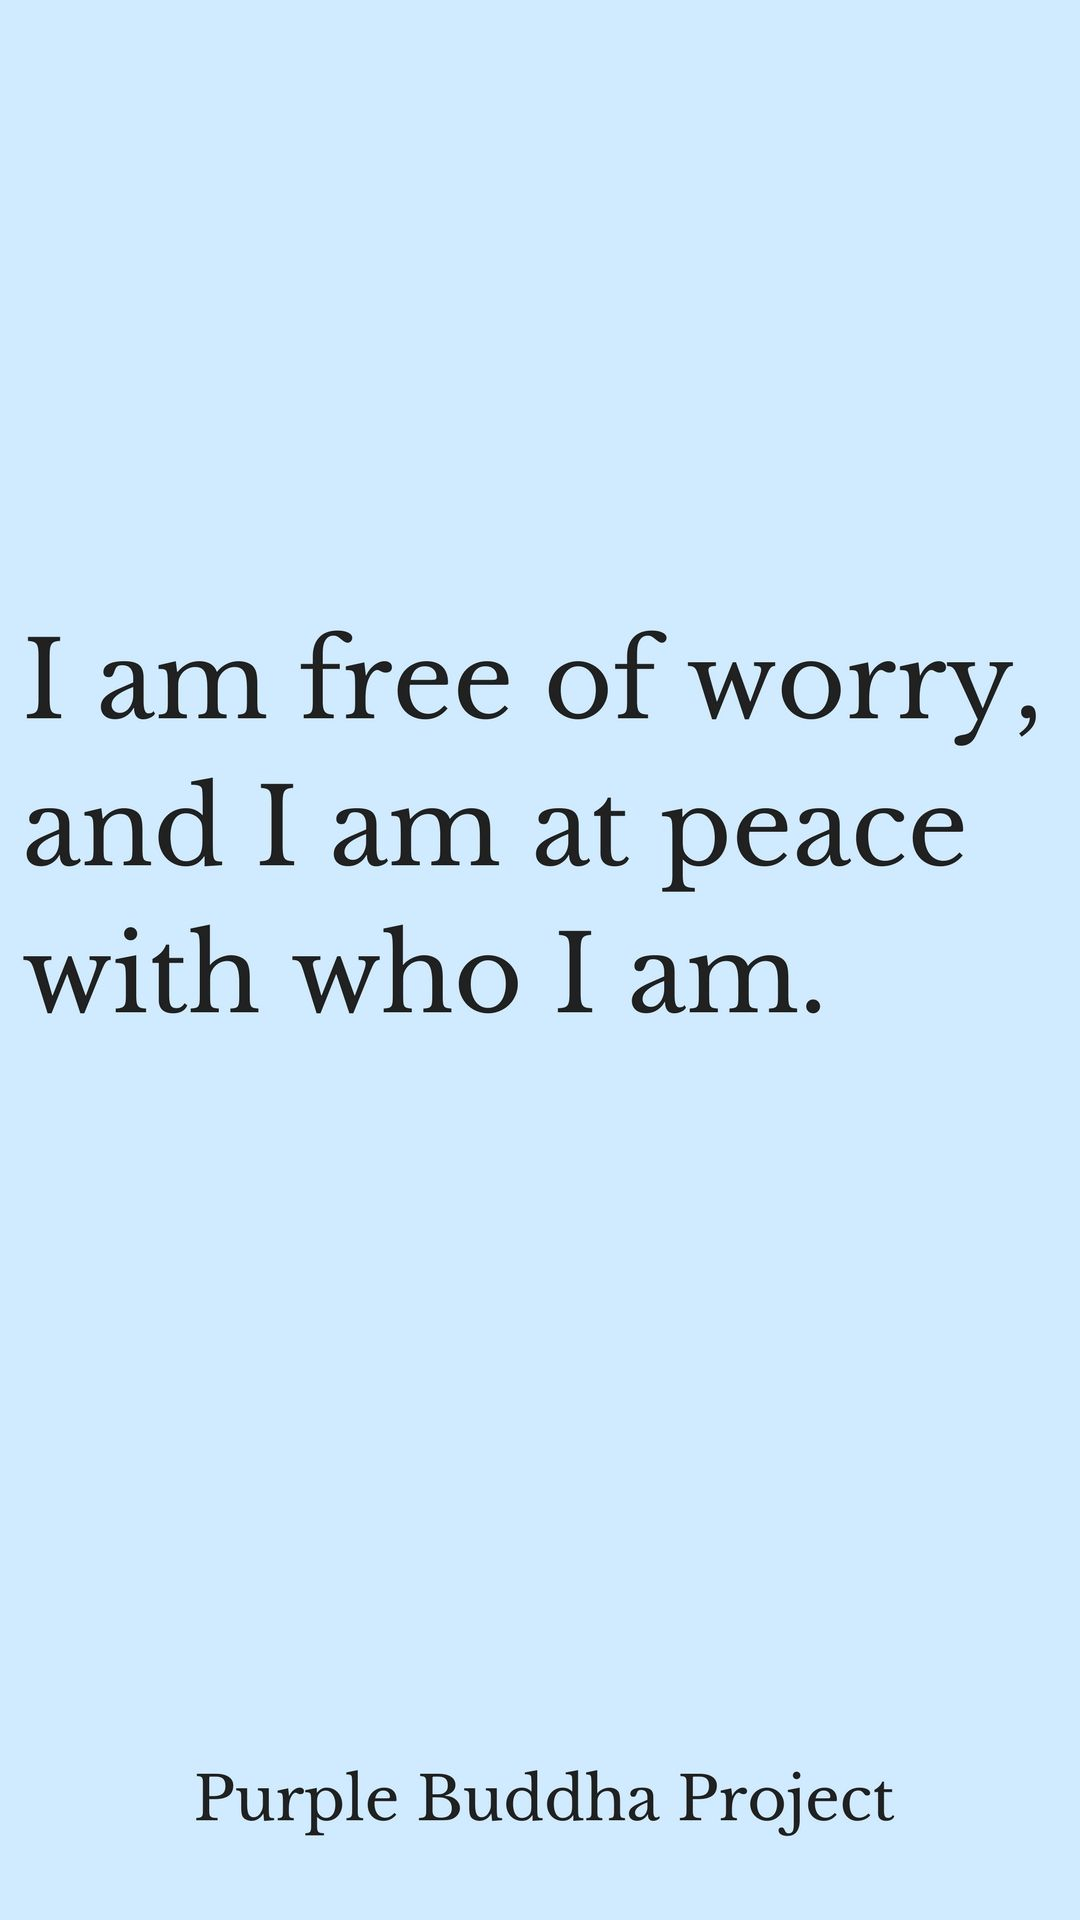 Spiritual Quotes About Love And Life Buddhist Spiritual Quotes On Happiness And Selflove To Live A Zen